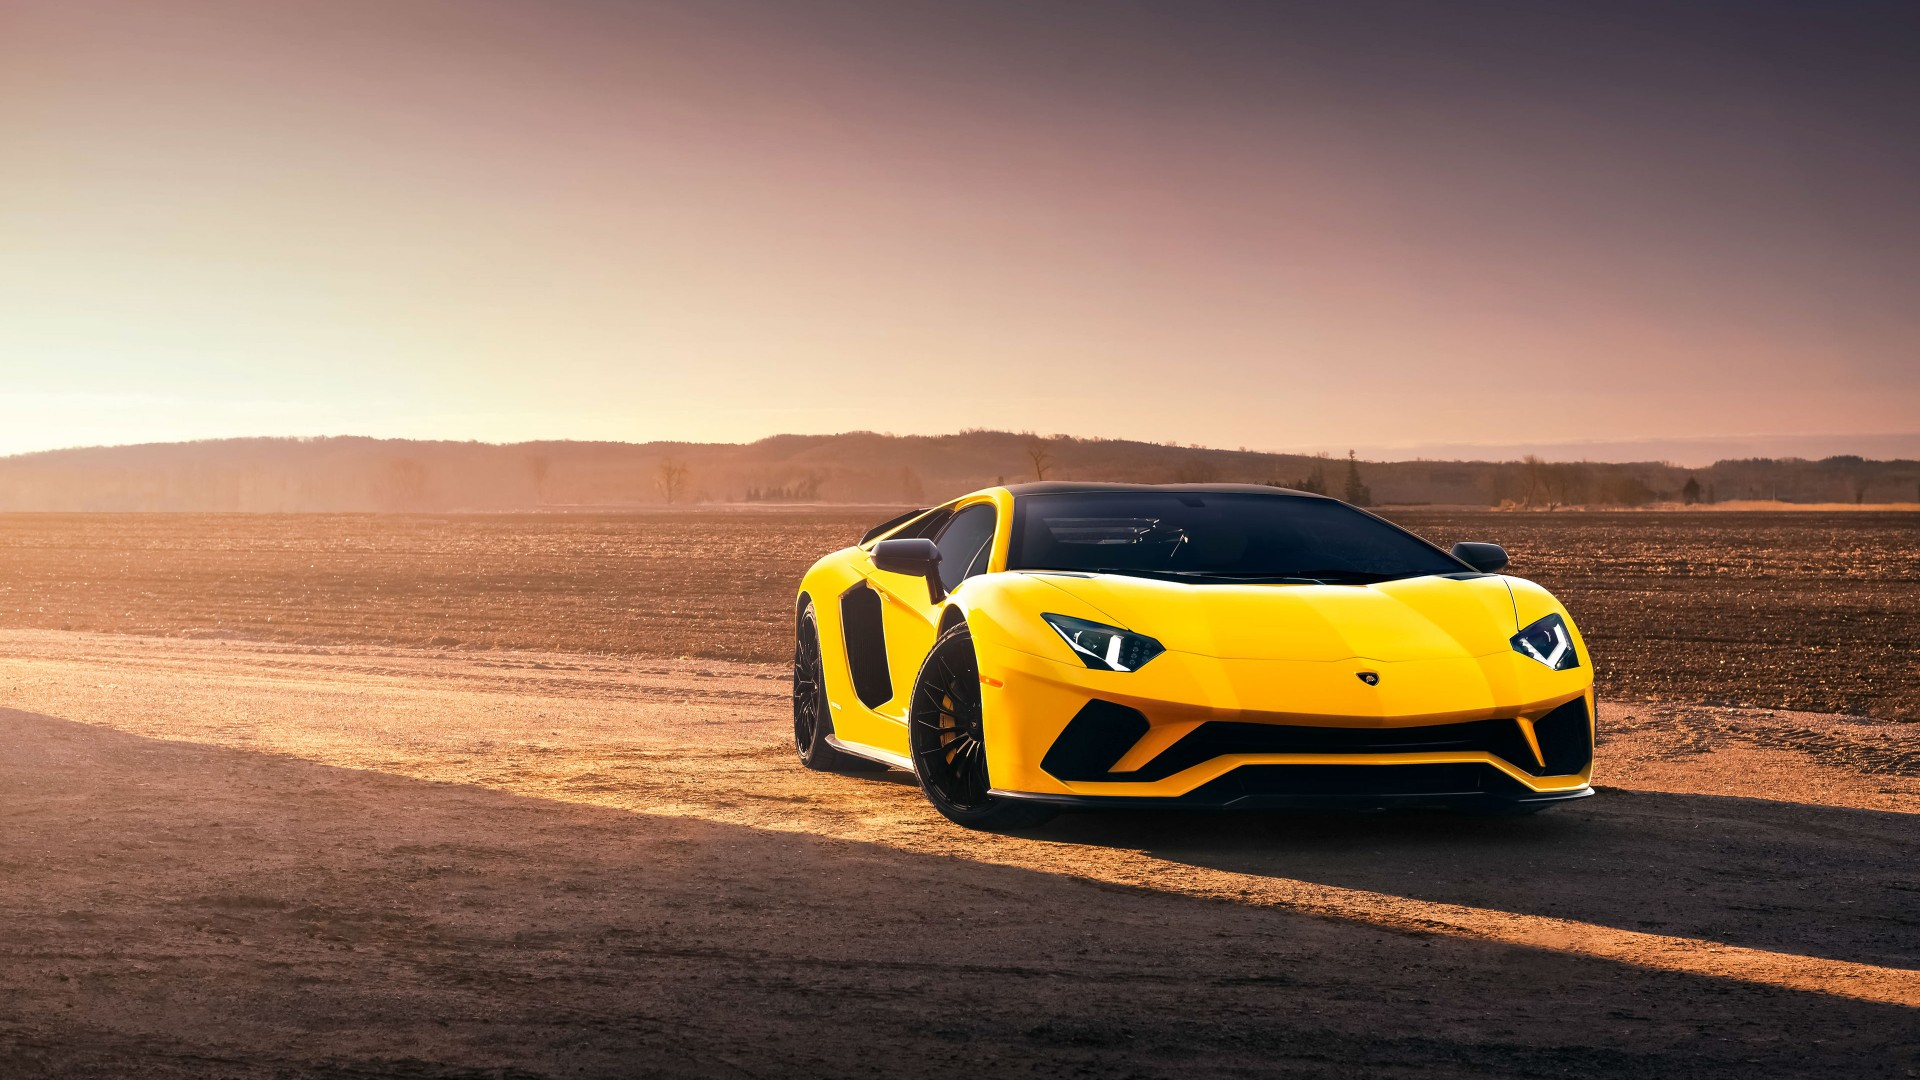 Hd Wallpapers Nature Flowers 3d Lamborghini Aventador S 4k Wallpapers Hd Wallpapers Id